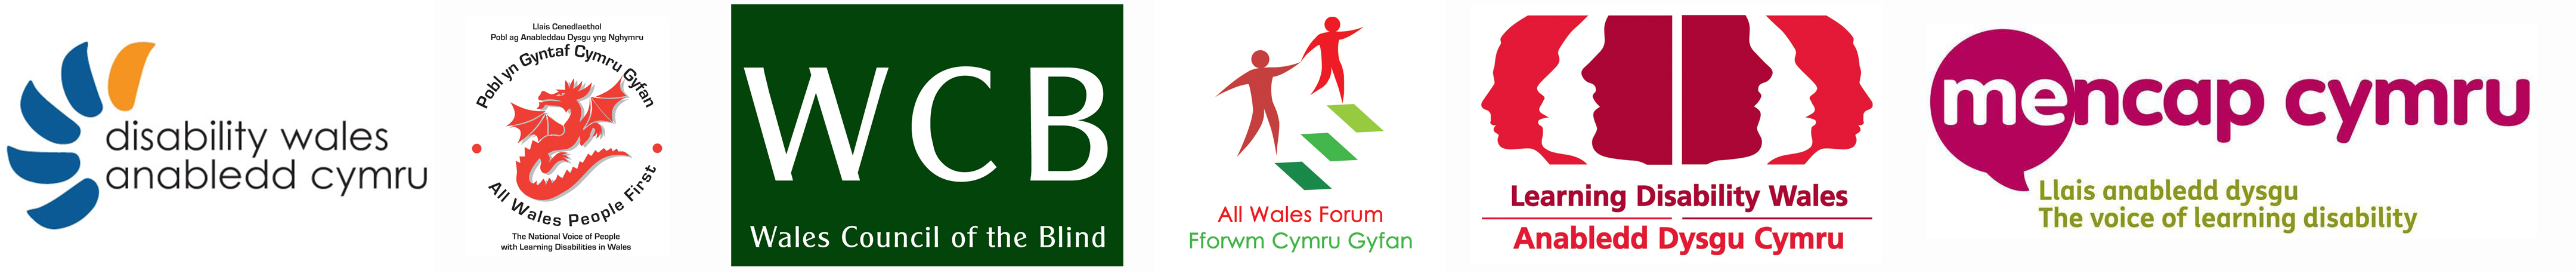 six logos of welsh national disability organisations